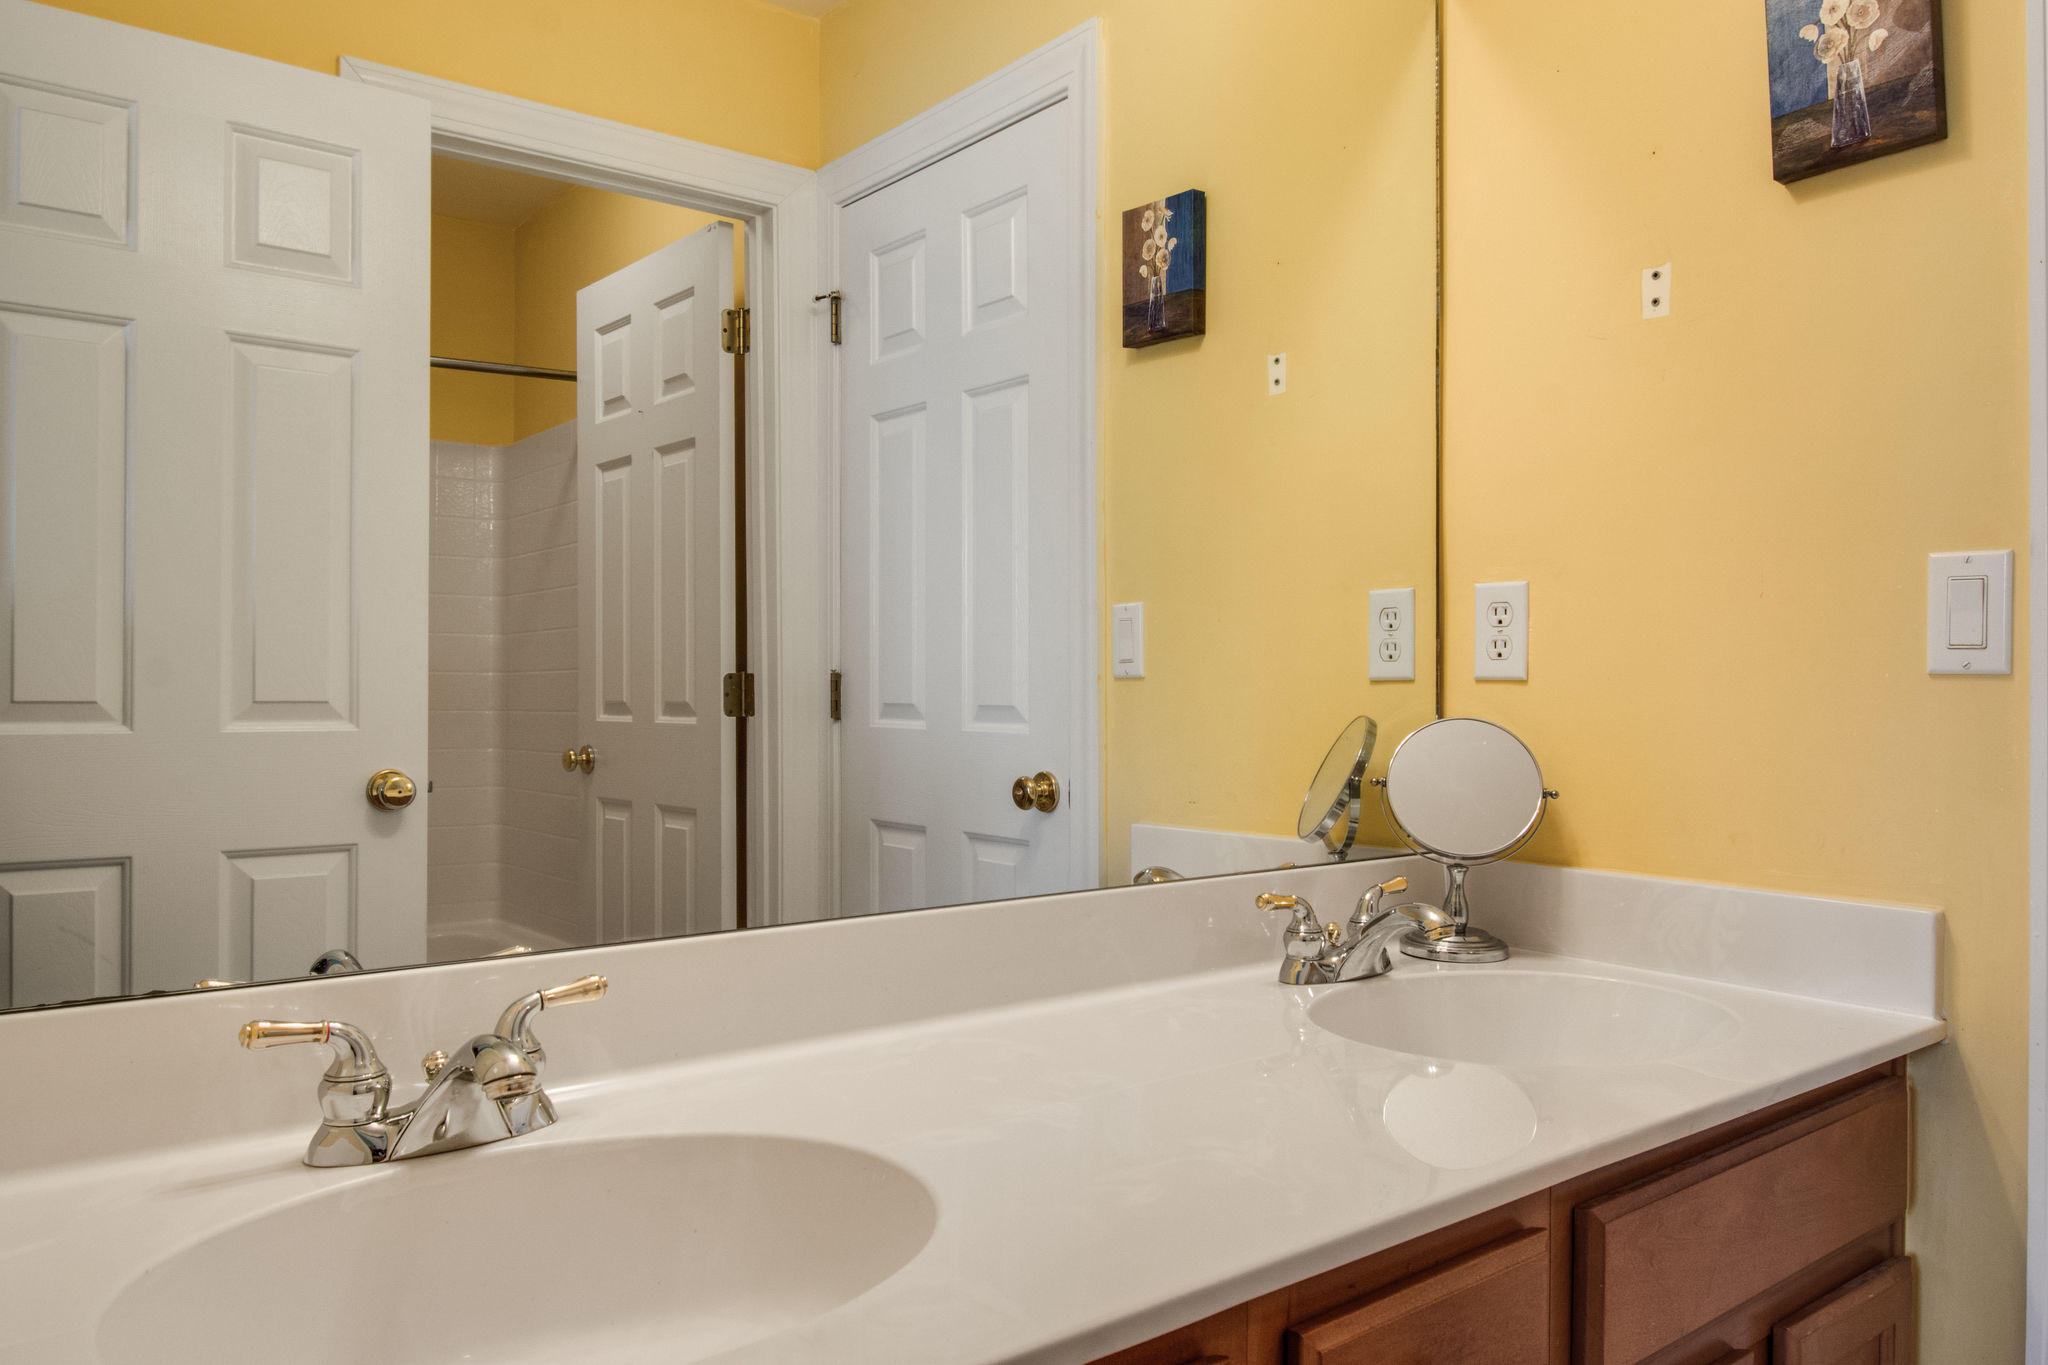 Rivertowne On The Wando Homes For Sale - 2226 Marsh, Mount Pleasant, SC - 14